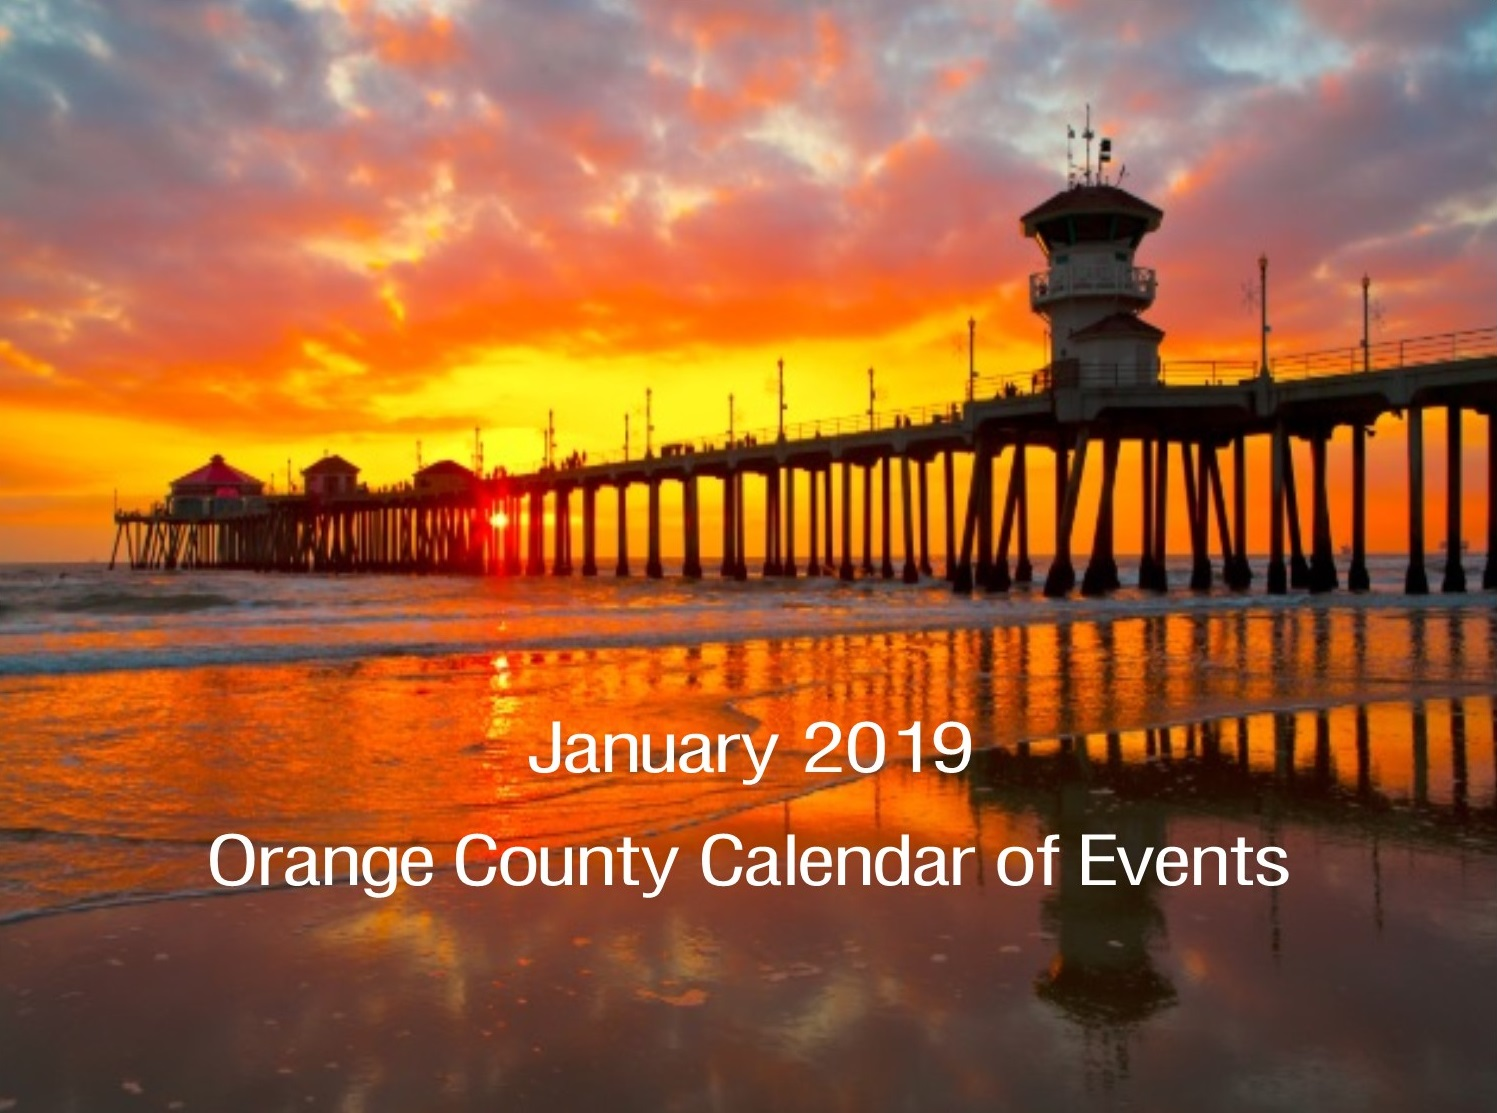 Oc Calendar 2019 January 2019 Orange County Calendar Of Events